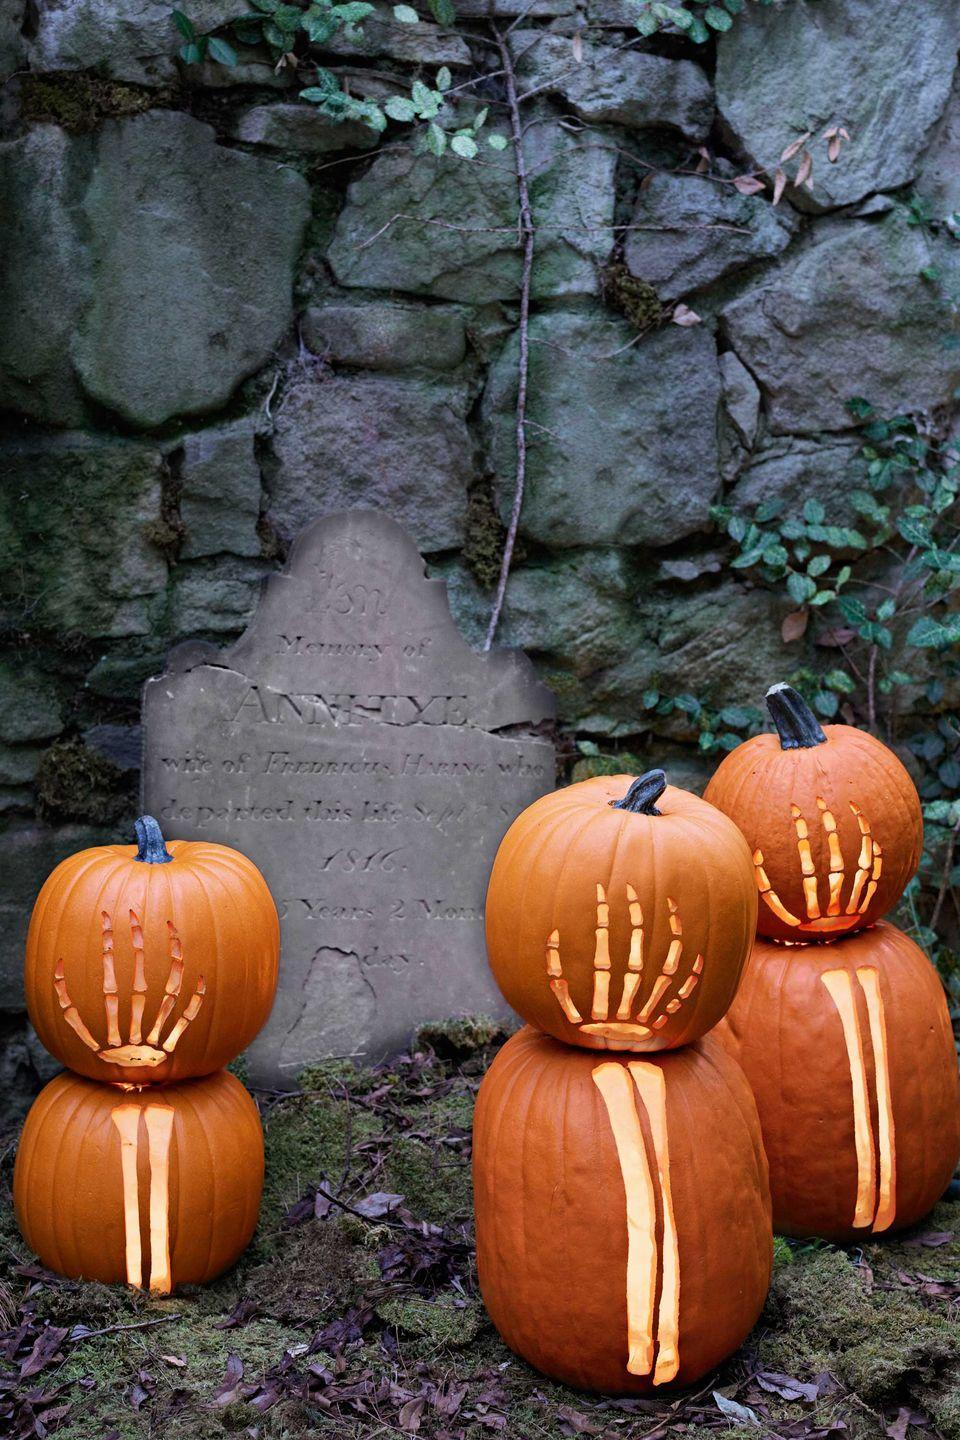 """<p>These carved pumpkins look as if they're reaching from beyond the grave in your front yard.</p><p><strong>Step 1:</strong> Select a pair of pumpkins to form each arm-hand combo. Determine which gourd will serve as the arm (usually the taller one) and trim its stem so the other pumpkin can rest securely on top. Carve a hole in the bottoms of both, scoop out the pulp, and return the cut pieces.</p><p><strong>Step 2:</strong> Print out our <a href=""""https://www.countryliving.com/diy-crafts/how-to/a3048/halloween-templates-1009/"""" rel=""""nofollow noopener"""" target=""""_blank"""" data-ylk=""""slk:skeletal templates"""" class=""""link rapid-noclick-resp"""">skeletal templates</a> and resize on a copier, scaling the images to fit your pumpkins.</p><p><strong>Step 3:</strong> Cut out stencils as directed on the templates and affix the arm stencil to the bottom pumpkin with masking tape. Trace on the design with a felt-tip pen. Repeat the process on the other pumpkin, using the hand template. </p><p><strong>Step 4:</strong> Remove stencils, then carefully carve along the drawn lines with an X-Acto knife. Affix a battery-operated votive candle in the base of each pumpkin with adhesive. </p>"""